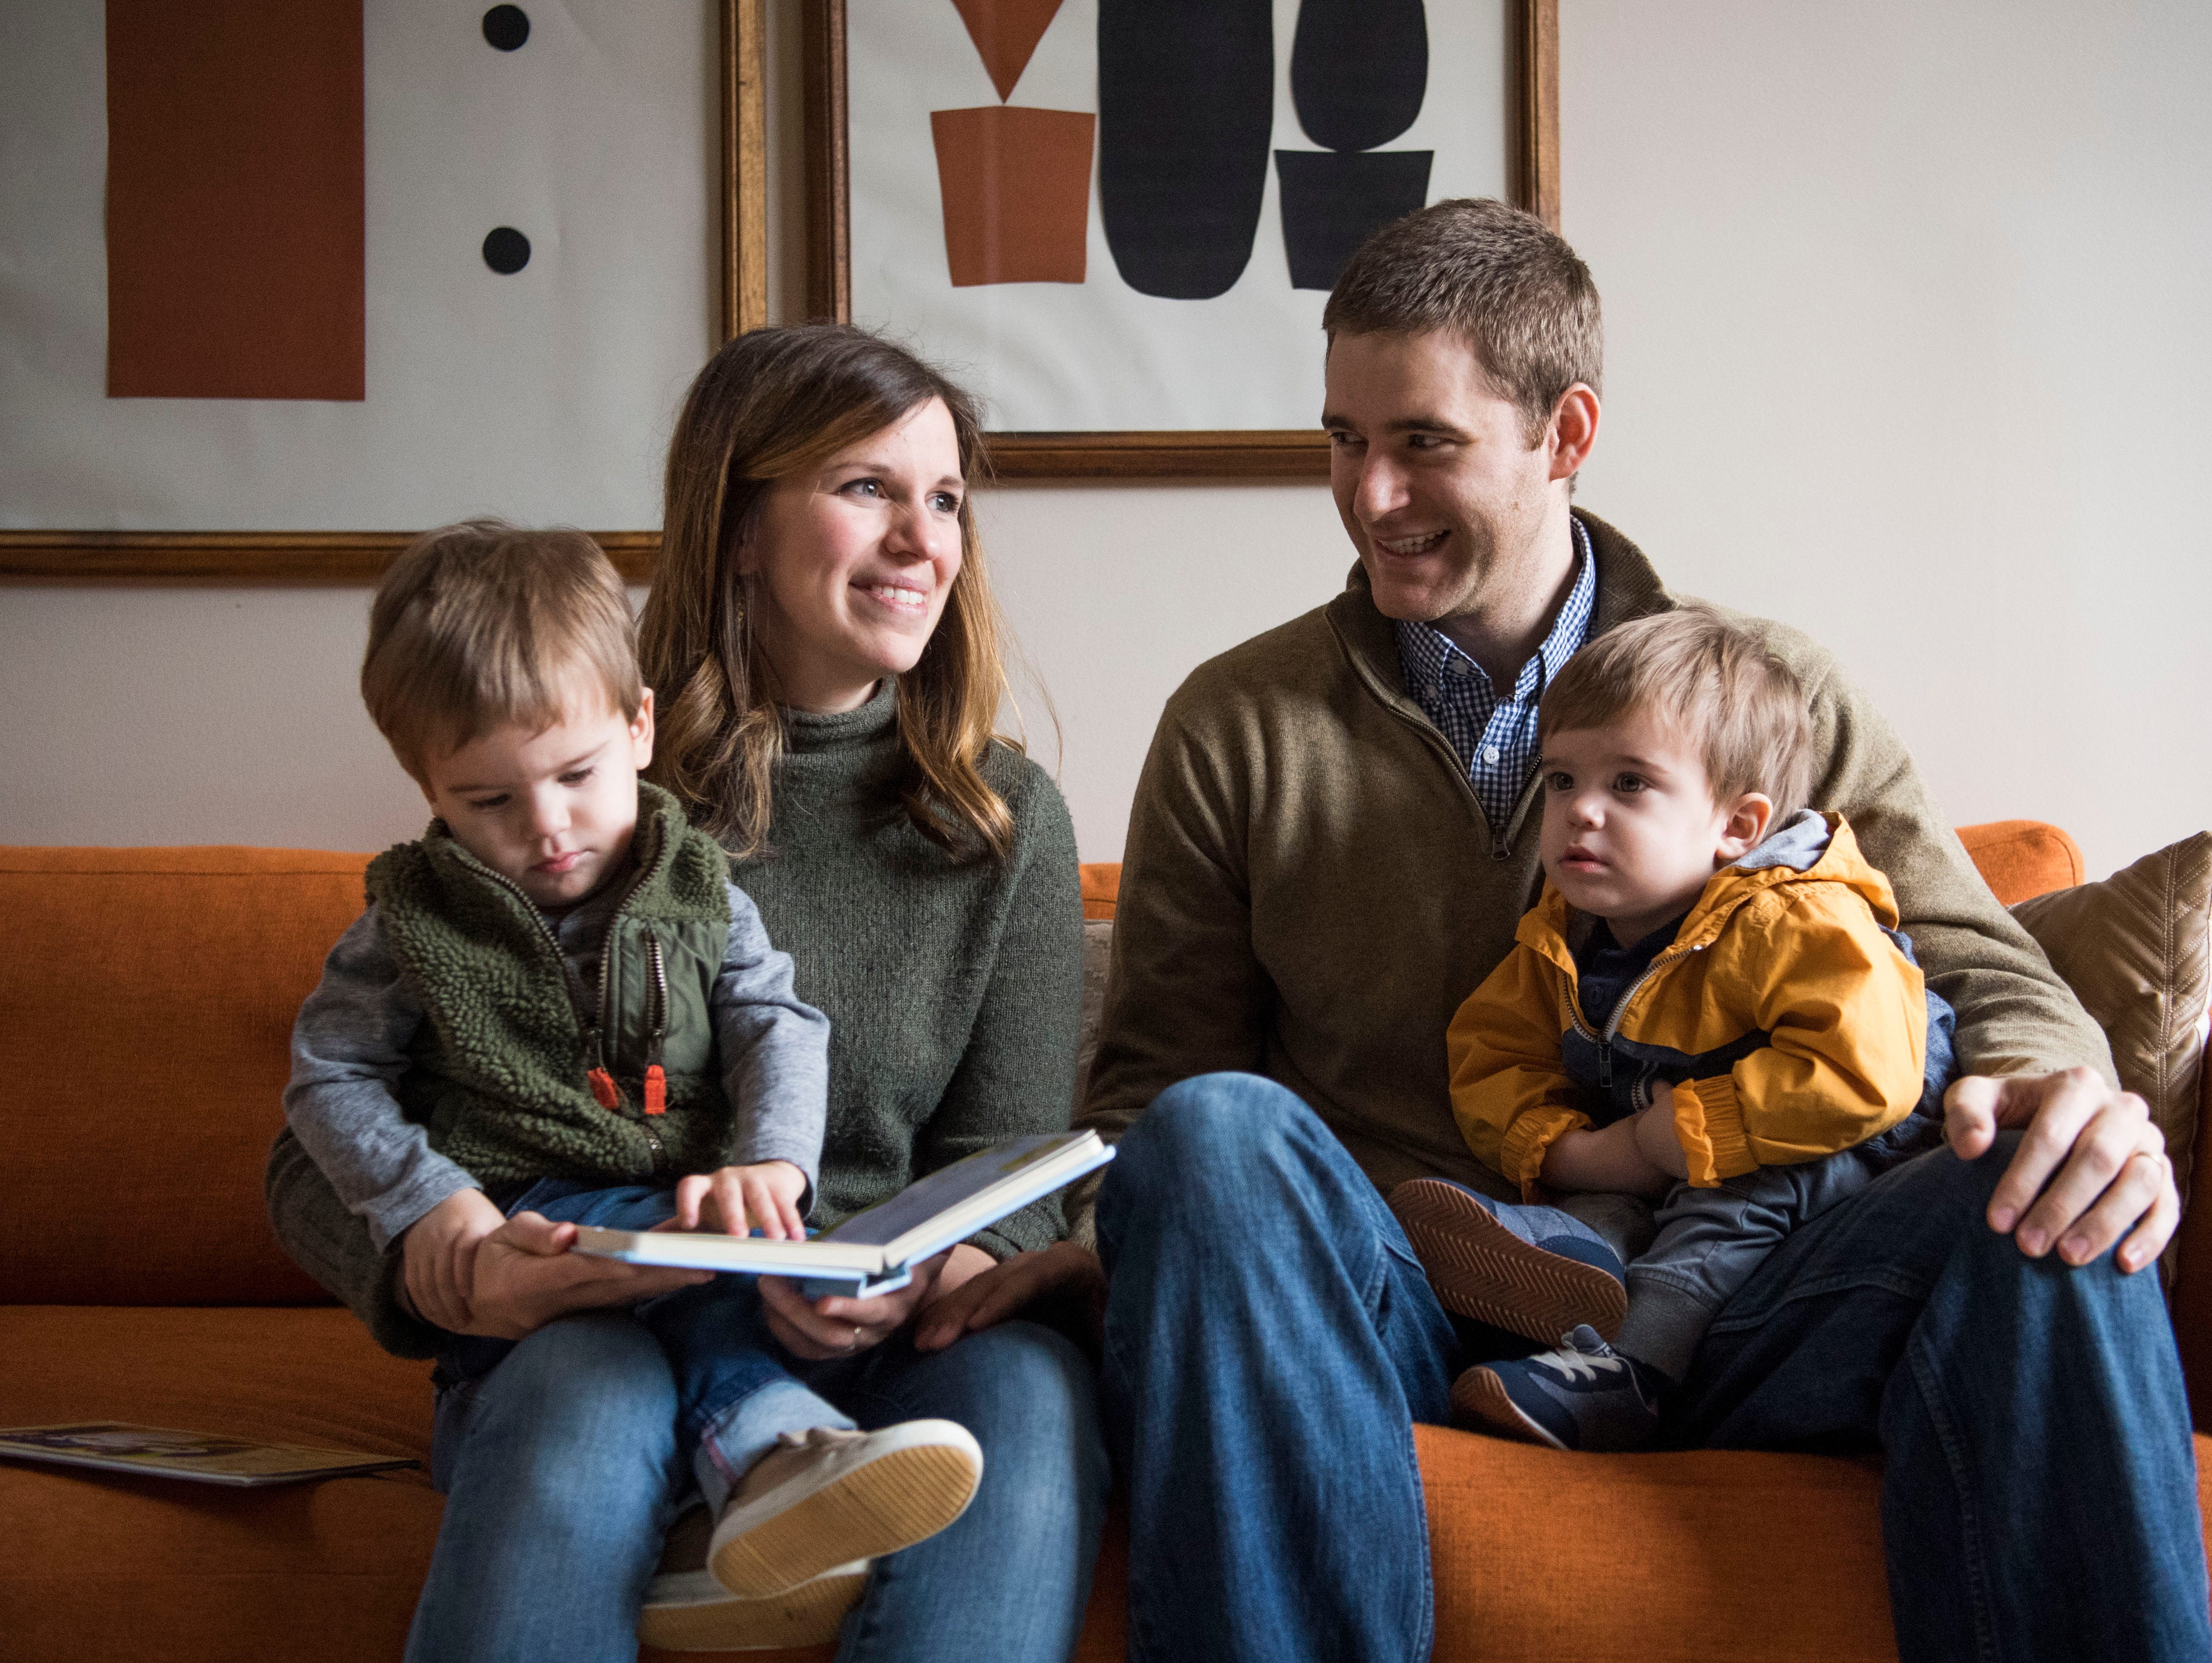 Suzanne and Dylan Robinson sit with their 21-month-old twin sons, from left, Duke and Pete, at one of 14 short-term rental properties the couple manages in their company Knox Staytion, in Old City Tuesday, Feb. 5, 2019.